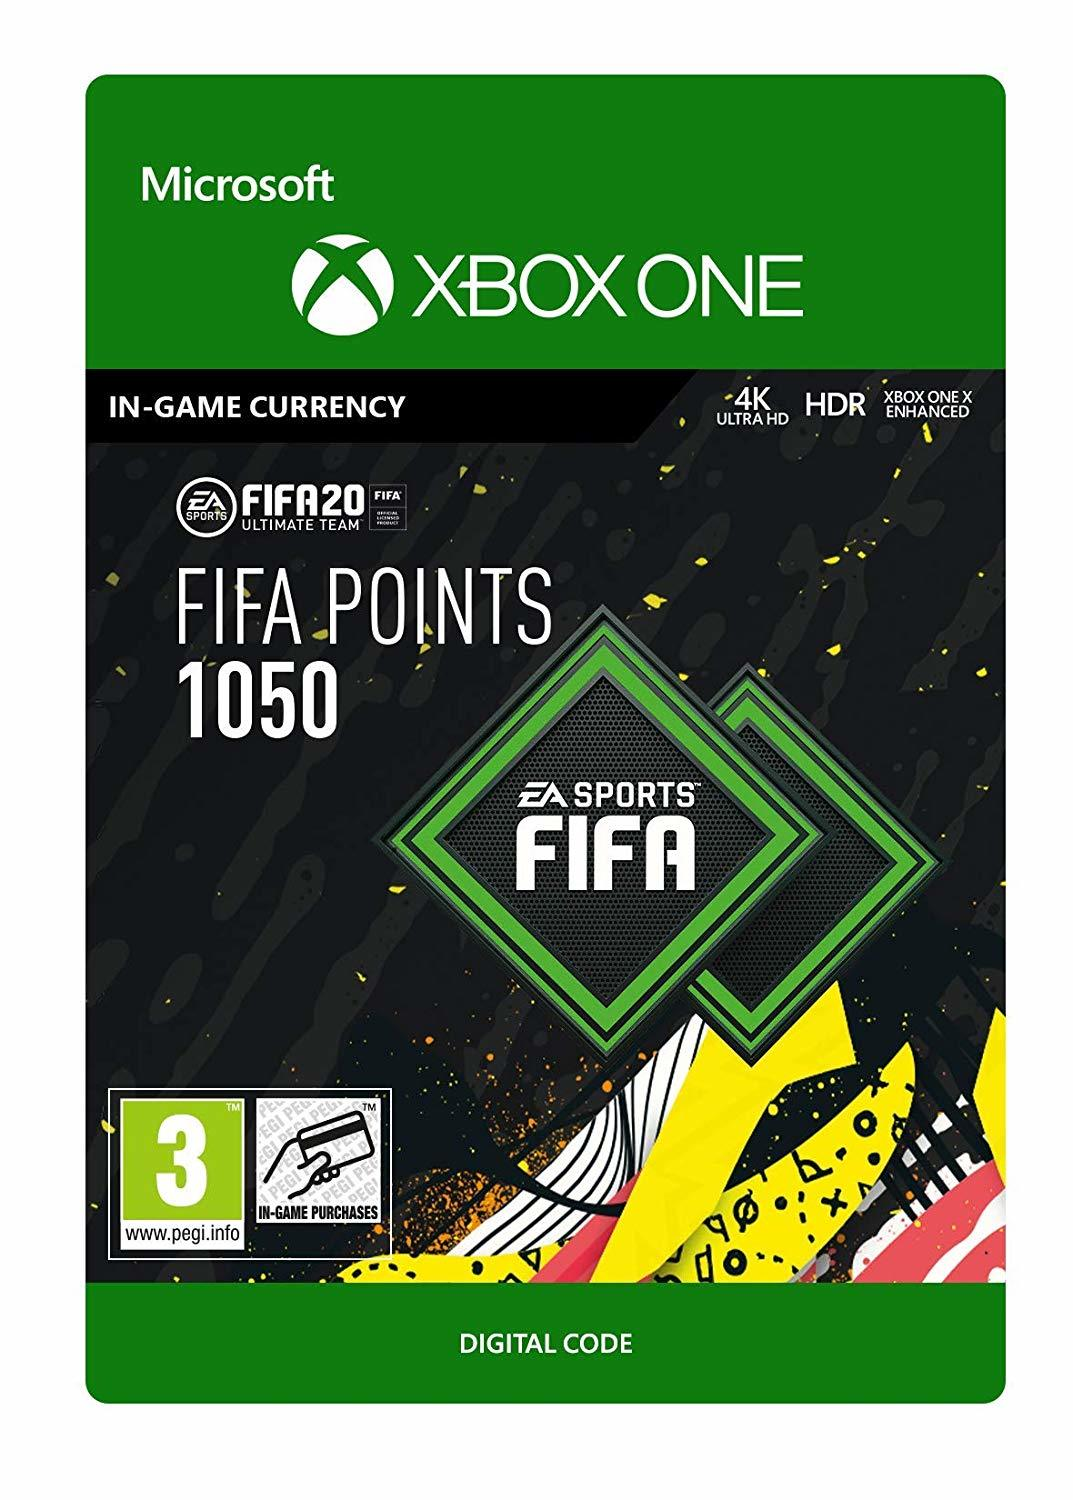 FIFA 20 Ultimate Team - 1050 FIFA Points (Digital Code) for Xbox One image